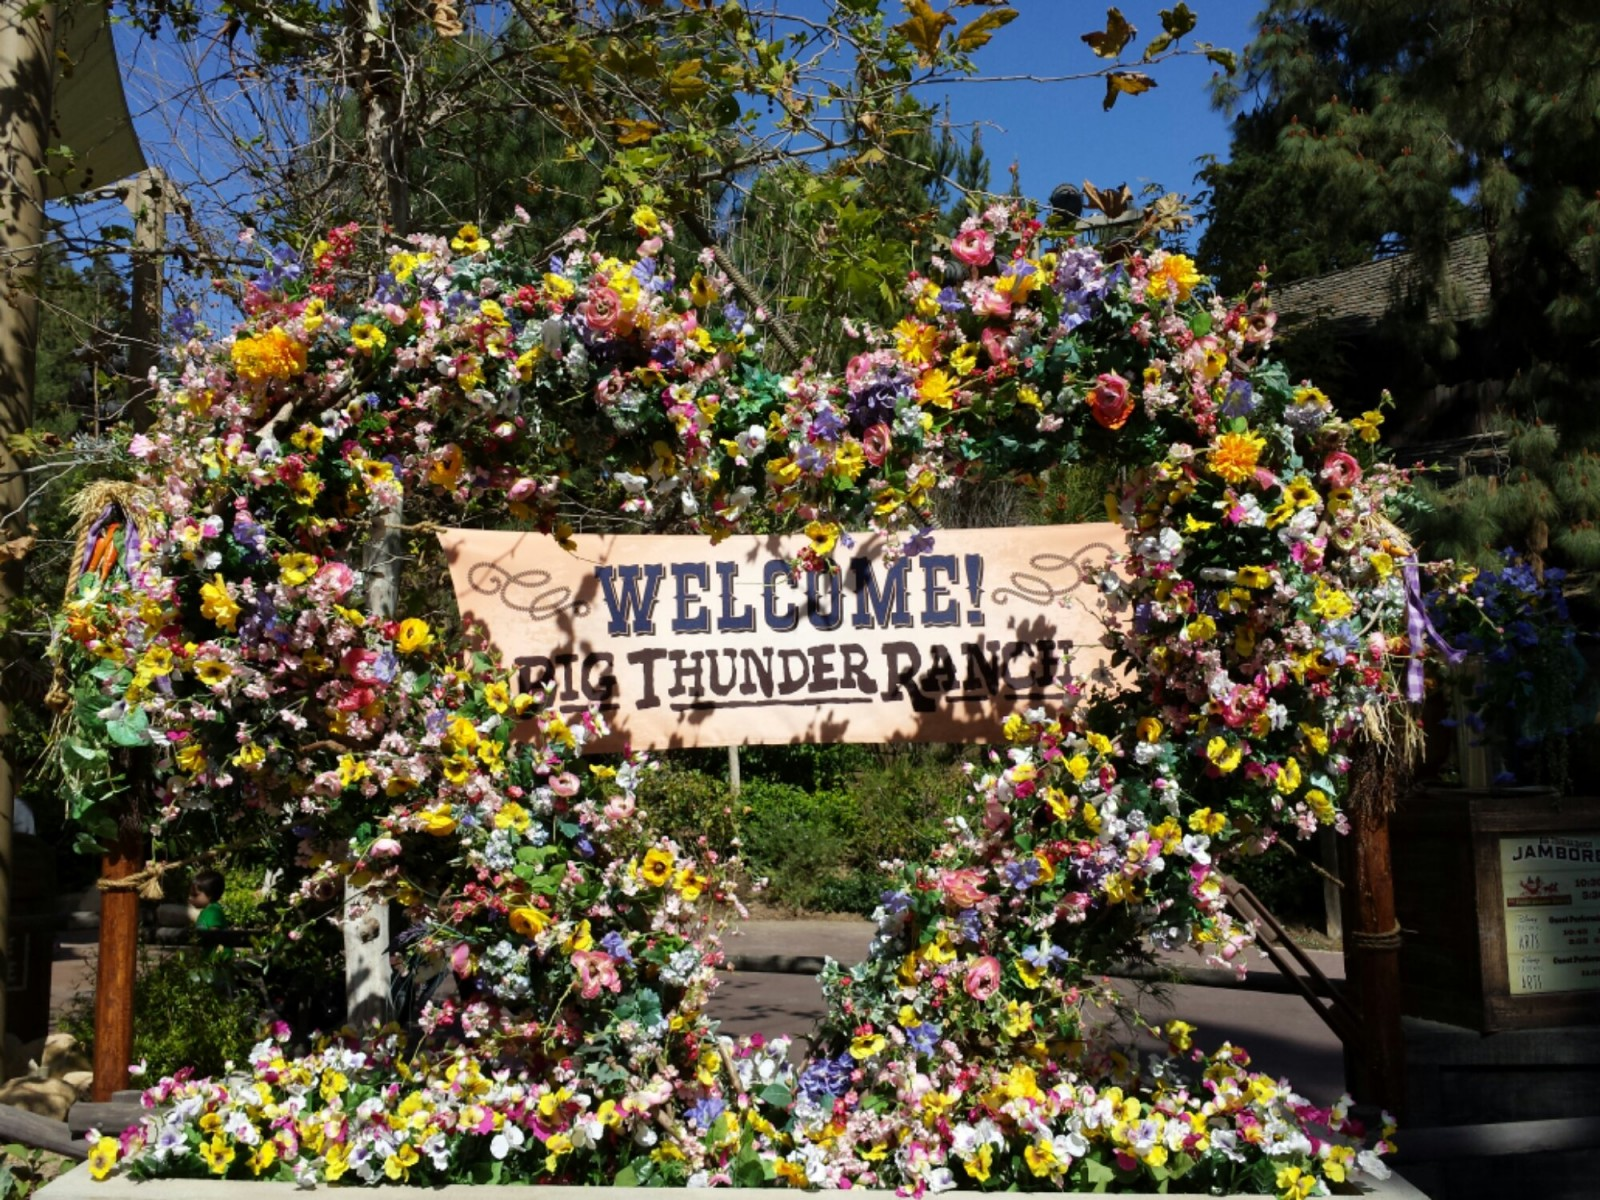 Big Thunder Ranch welcome sign and floral heart